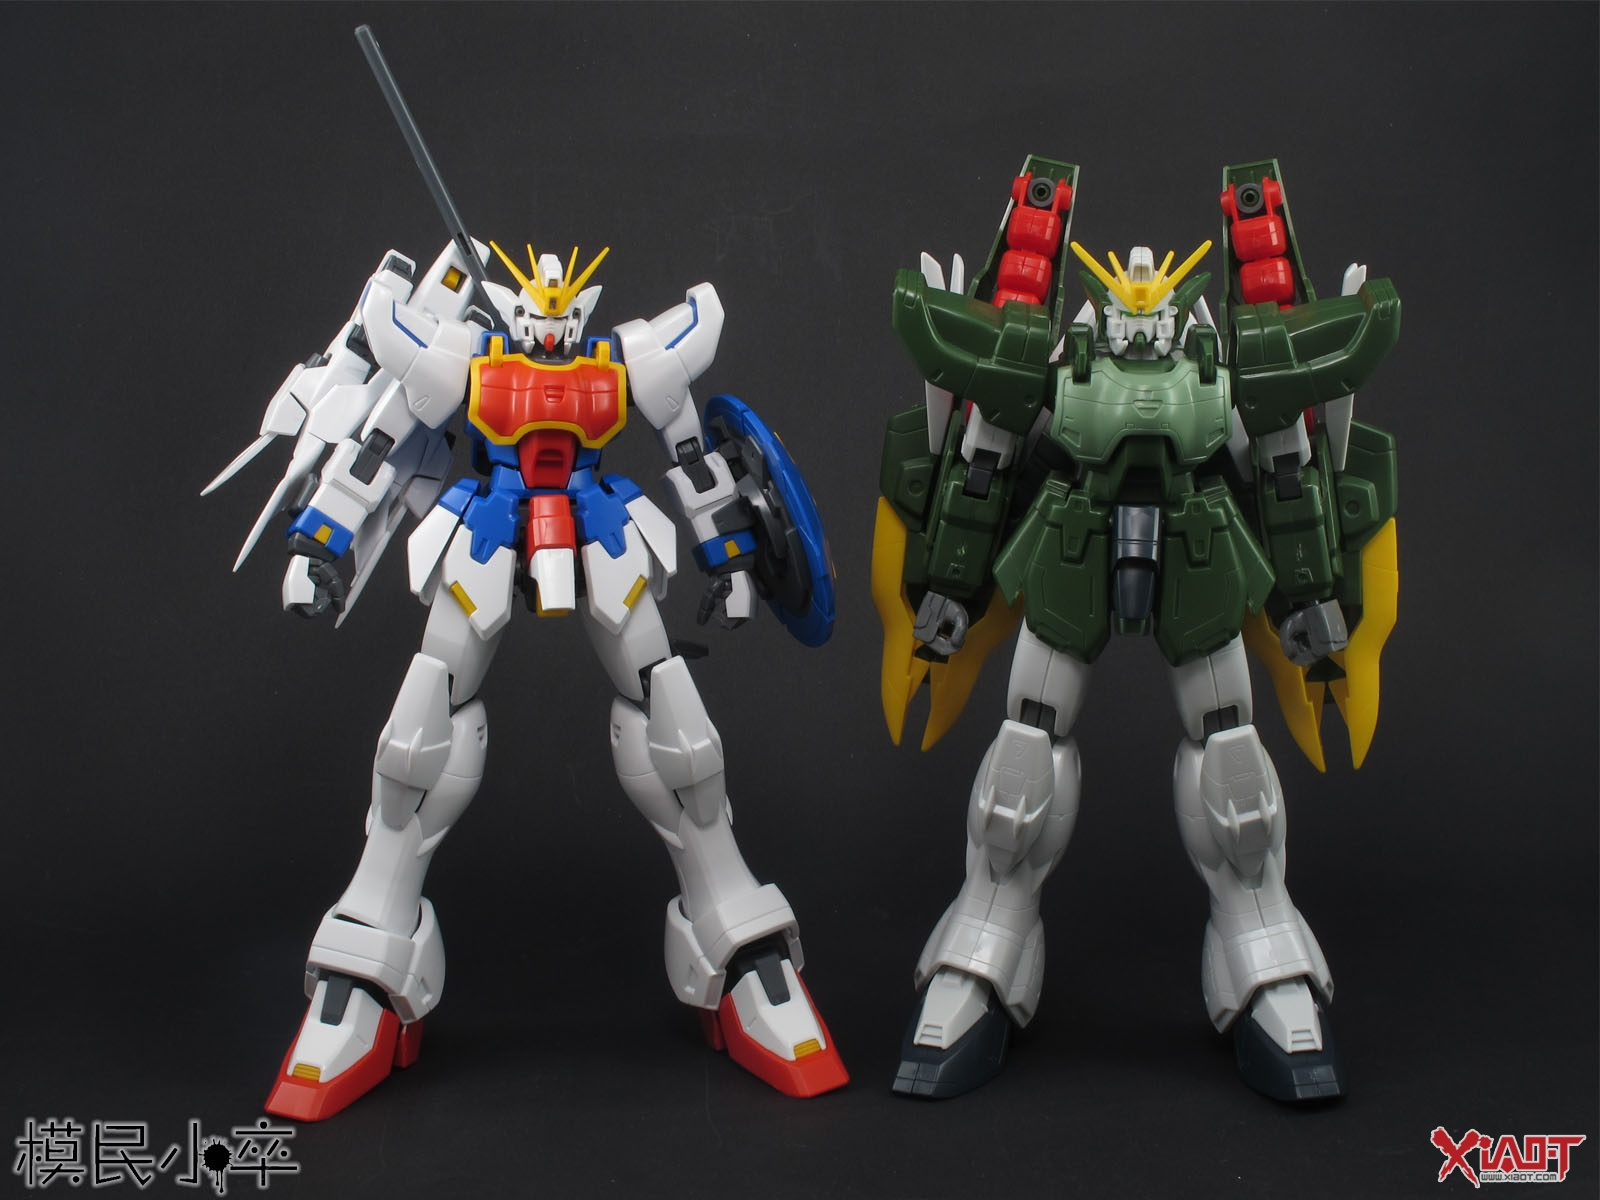 Custom Build: MG 1/100 Gundam Nataku - Gundam Kits ...